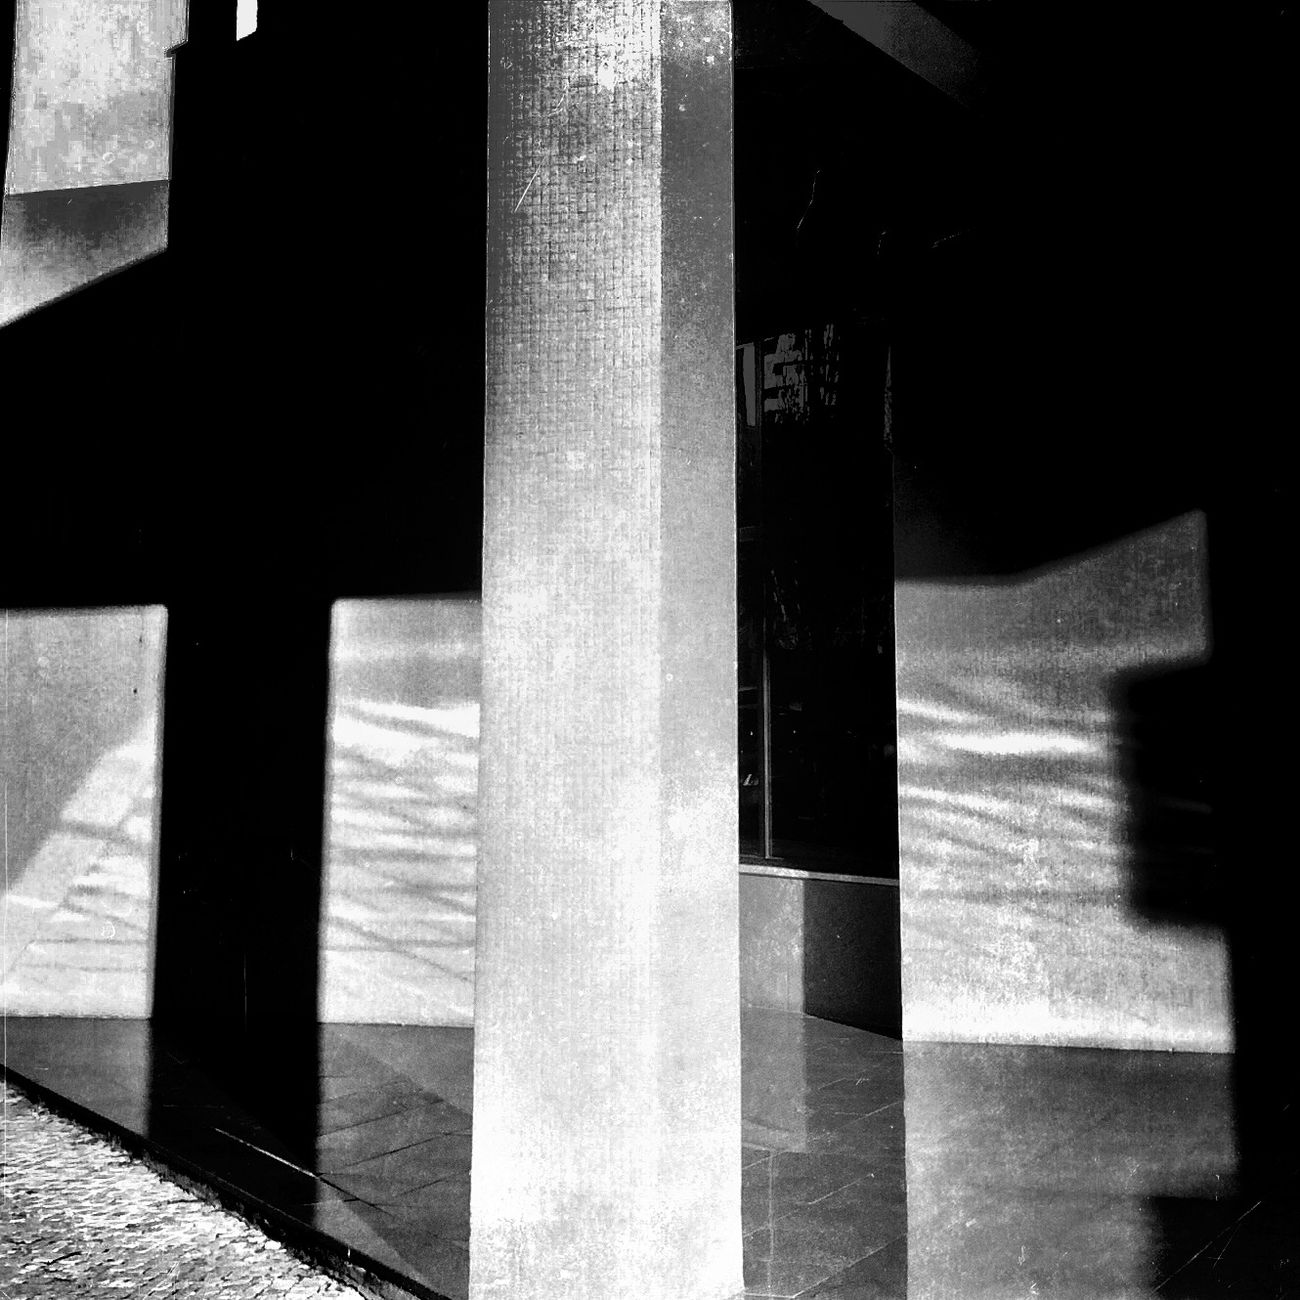 Fueling The Imagination AMPt_community Black And White NEM Black&white IPhoneography EyeEm Best Shots - Black + White NEM Architecture Shootermag NEM Abstracts AMPt - My Perspective ok 😏 i admit I got inspired by the Foyer of the building in the movie walled in 😳